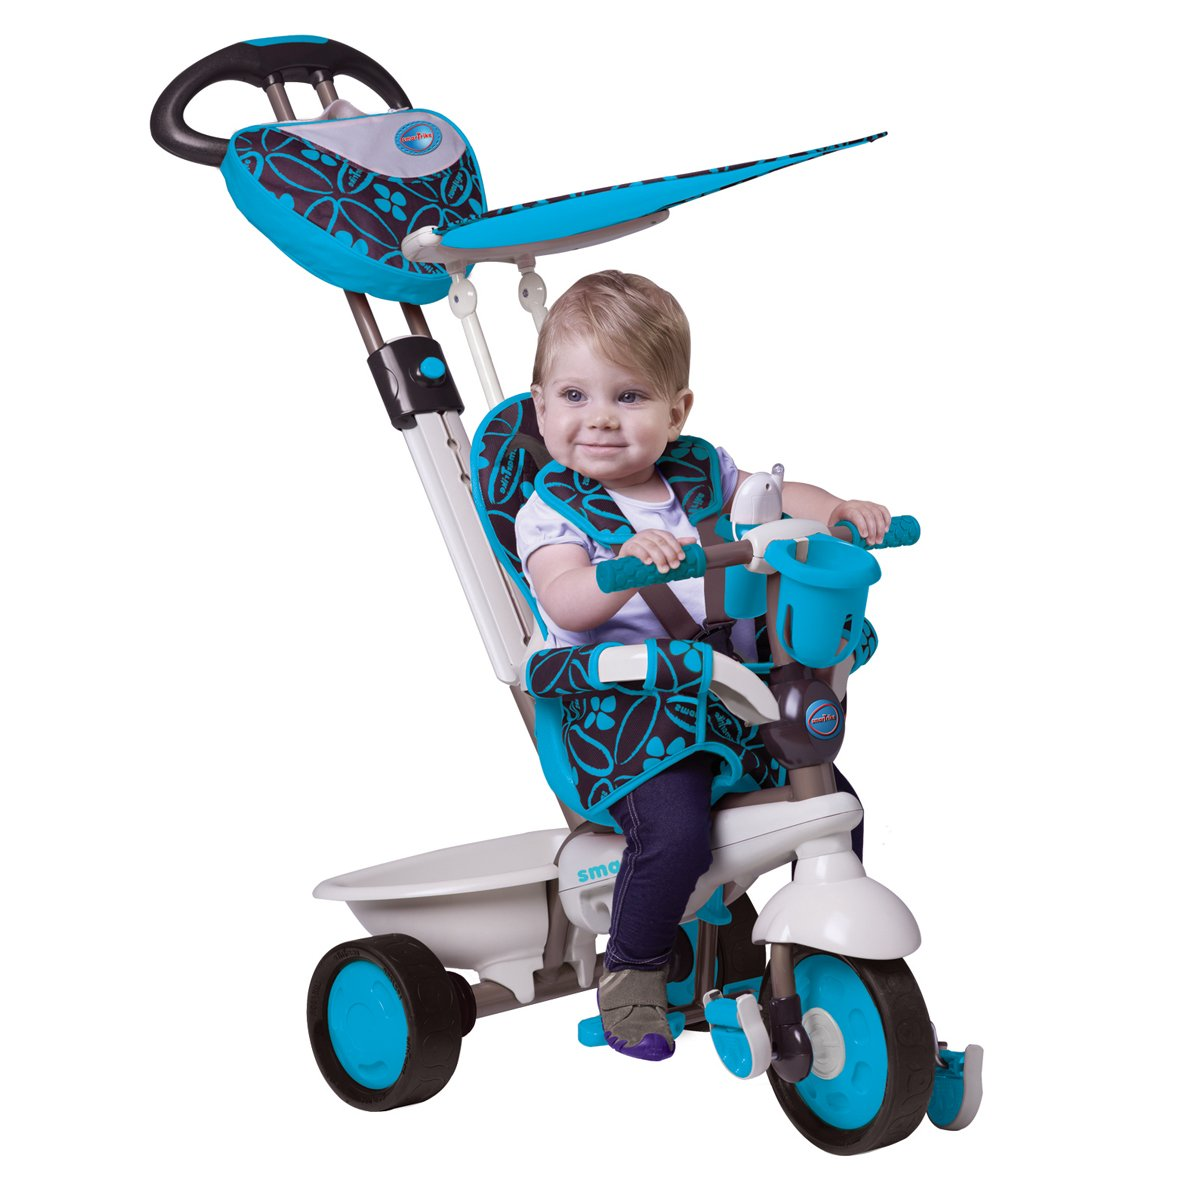 smarTrike Dream 4 in 1 Baby Trike